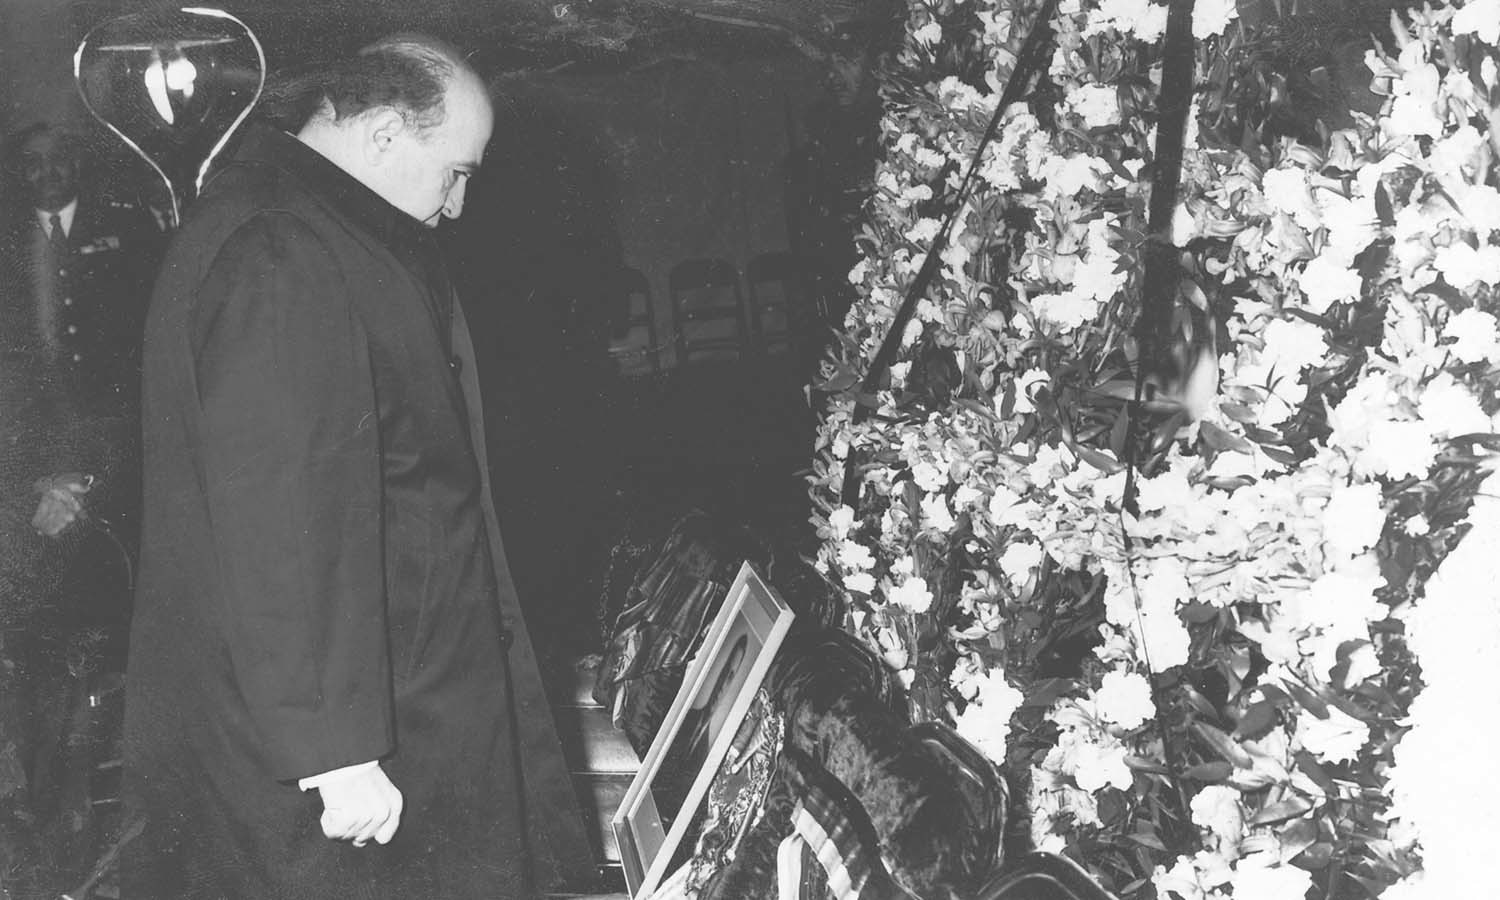 Prime Minister of Iran Amir-Abbas Hoveyda pays his last respects to President Mirza at the Sepahsalar Mosque in Tehran. | Photo: The Iskander Mirza Family Collection, Karachi